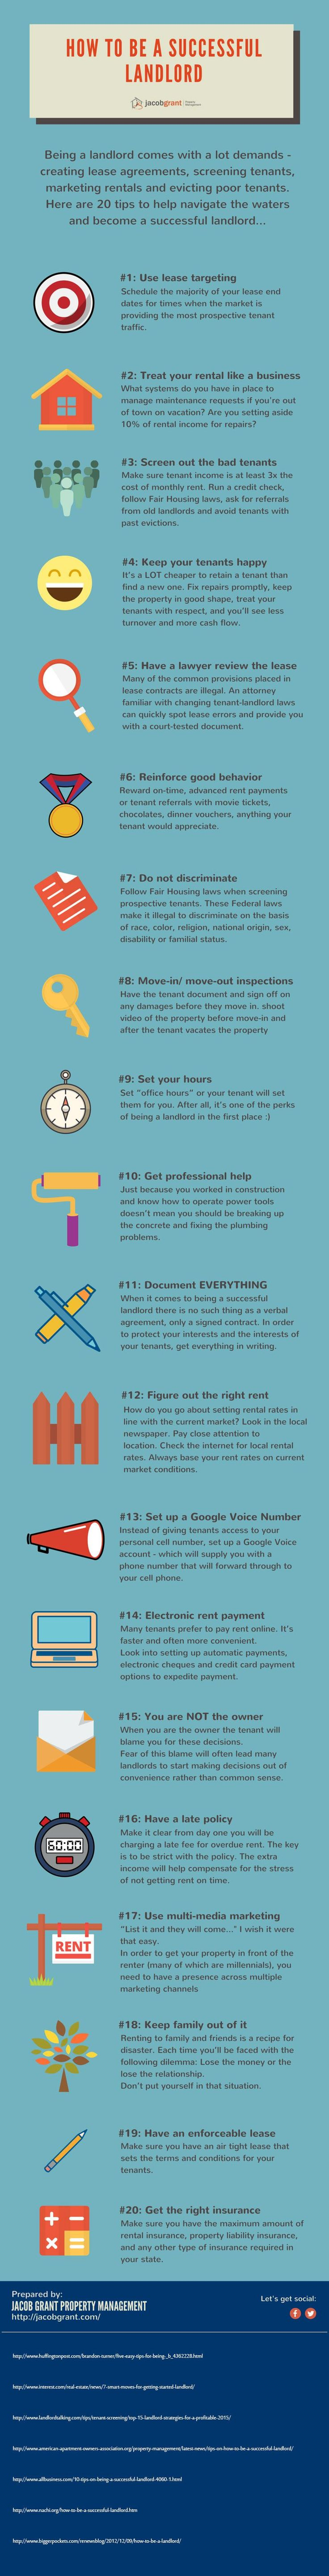 Here we have put together a few pointers to how to take care of your - Best 25 Home Buying Tips Ideas On Pinterest Home Buying House Hunting Tips First Time And House Buyers